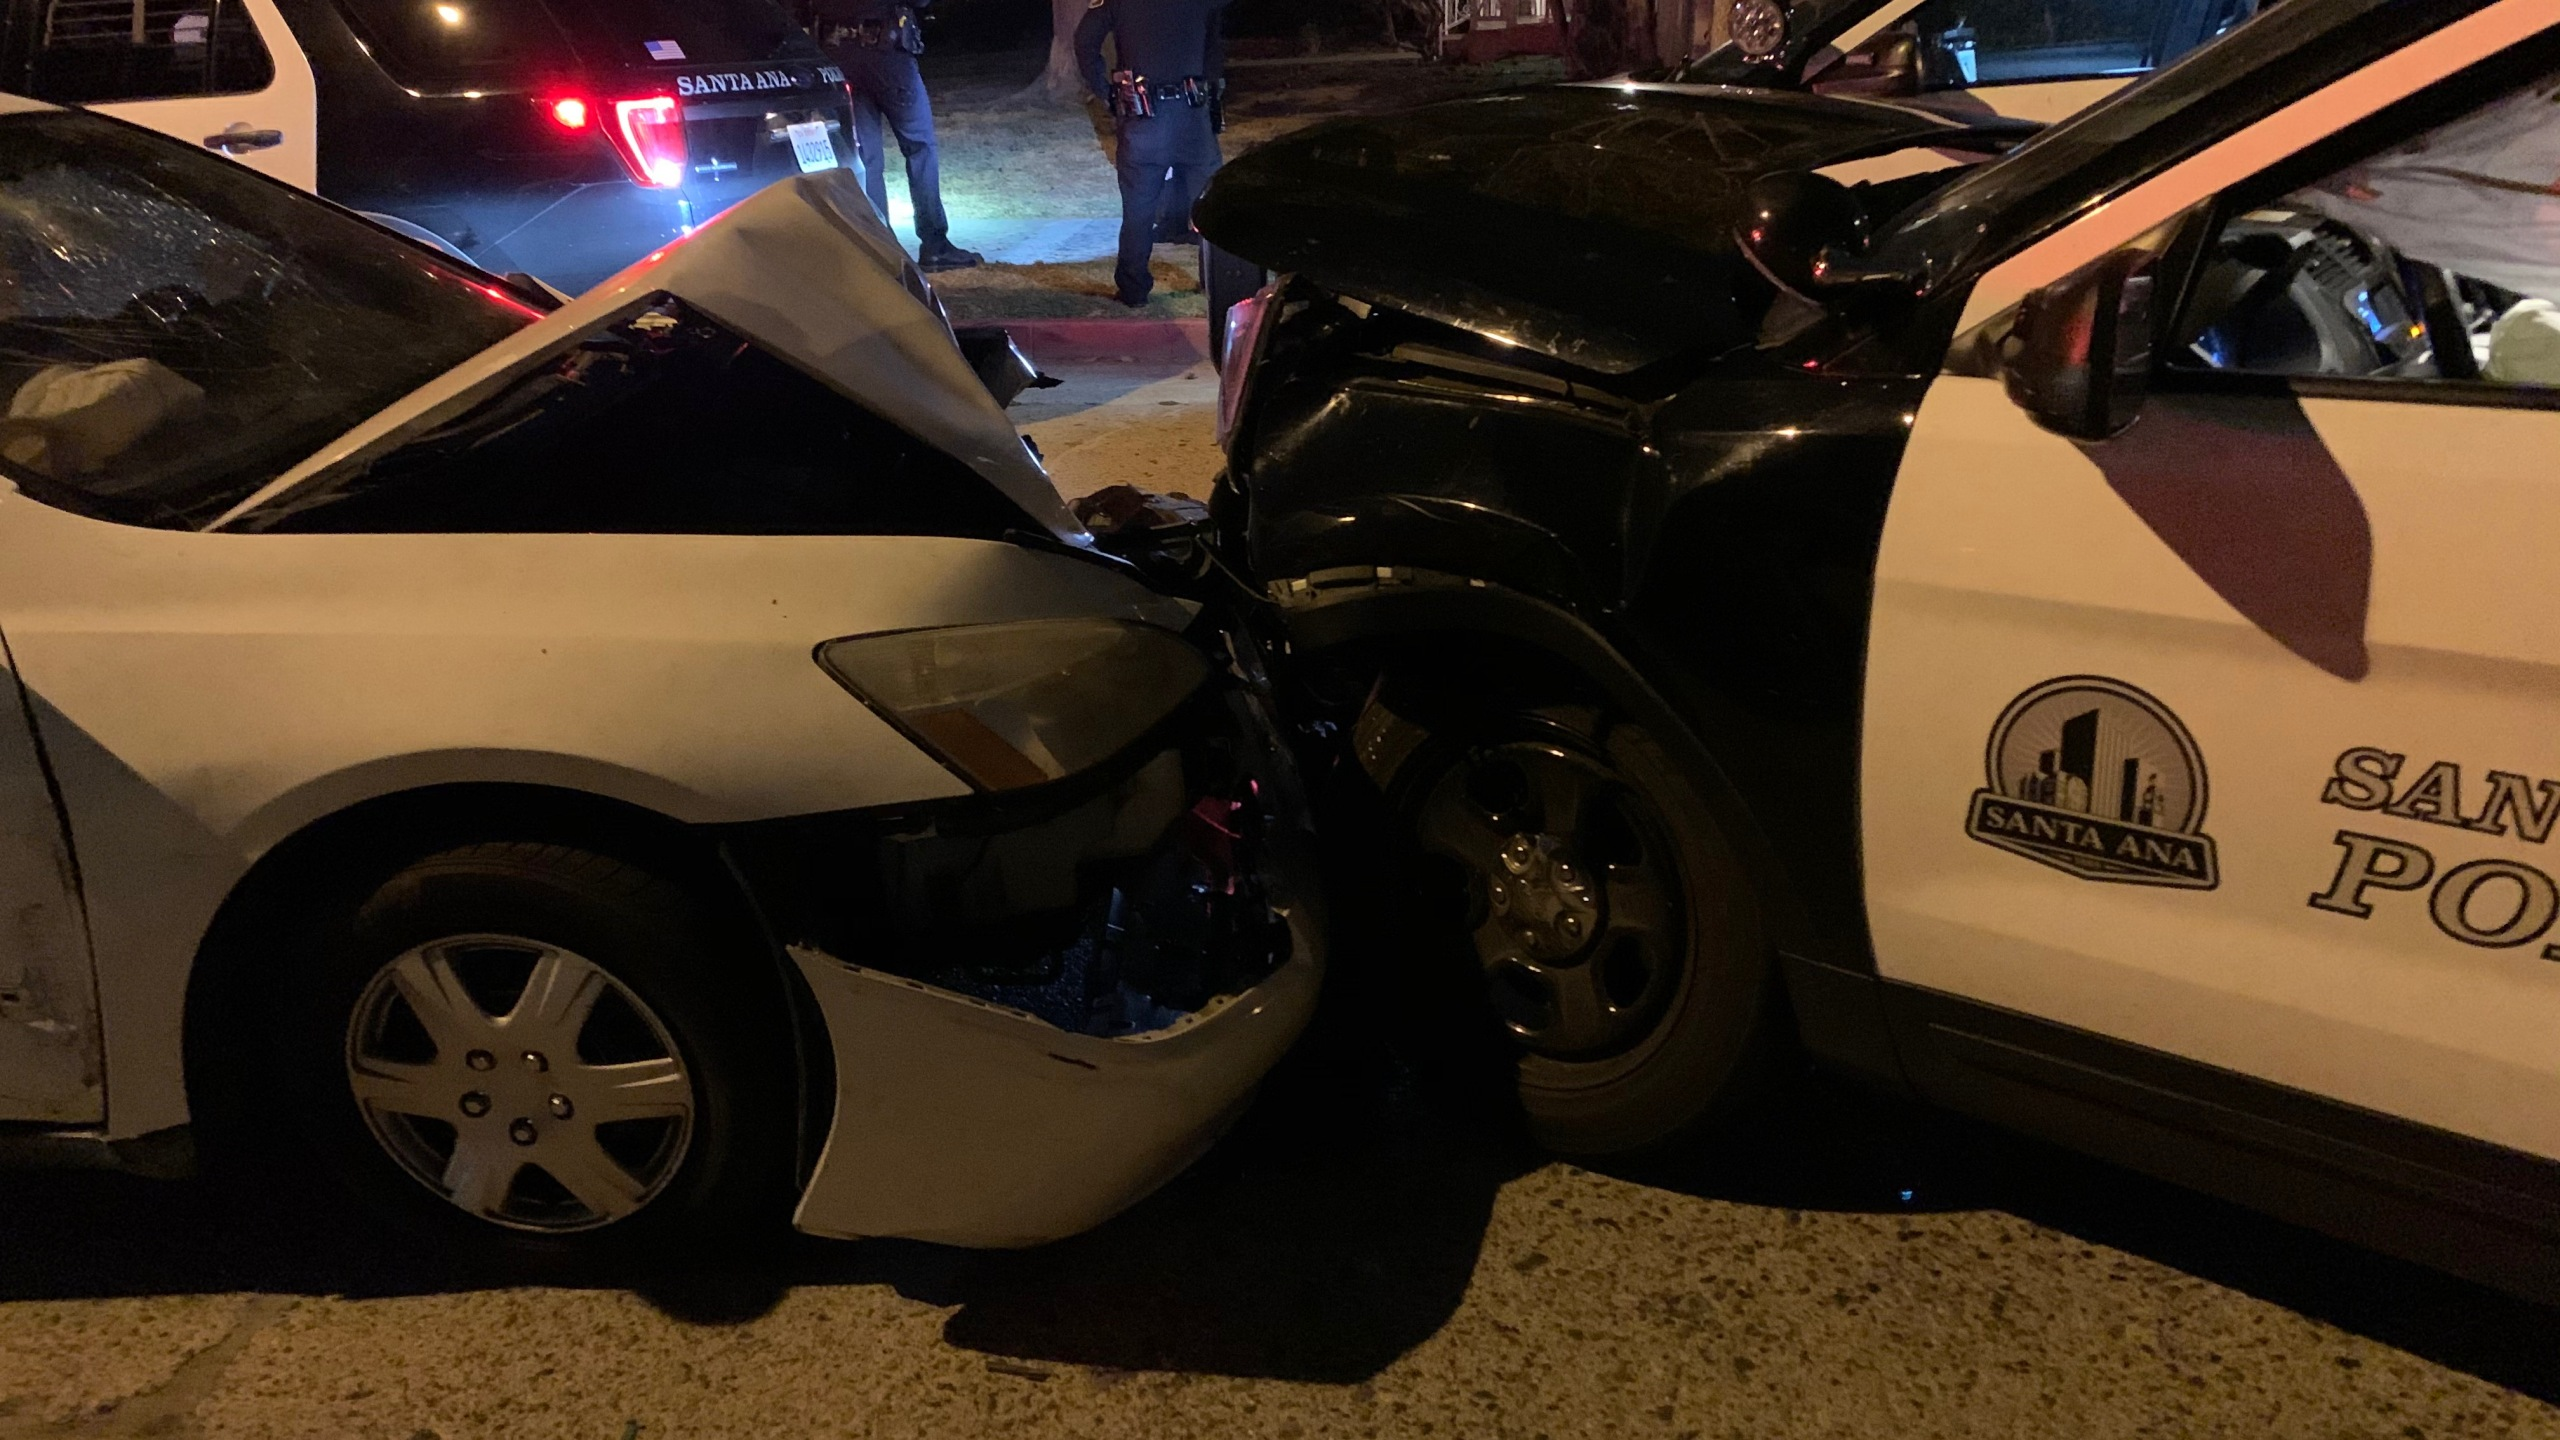 Police say a vehicle struck a parked police unit on Nov. 20, 2020, in Santa Ana.(Santa Ana Police Department)